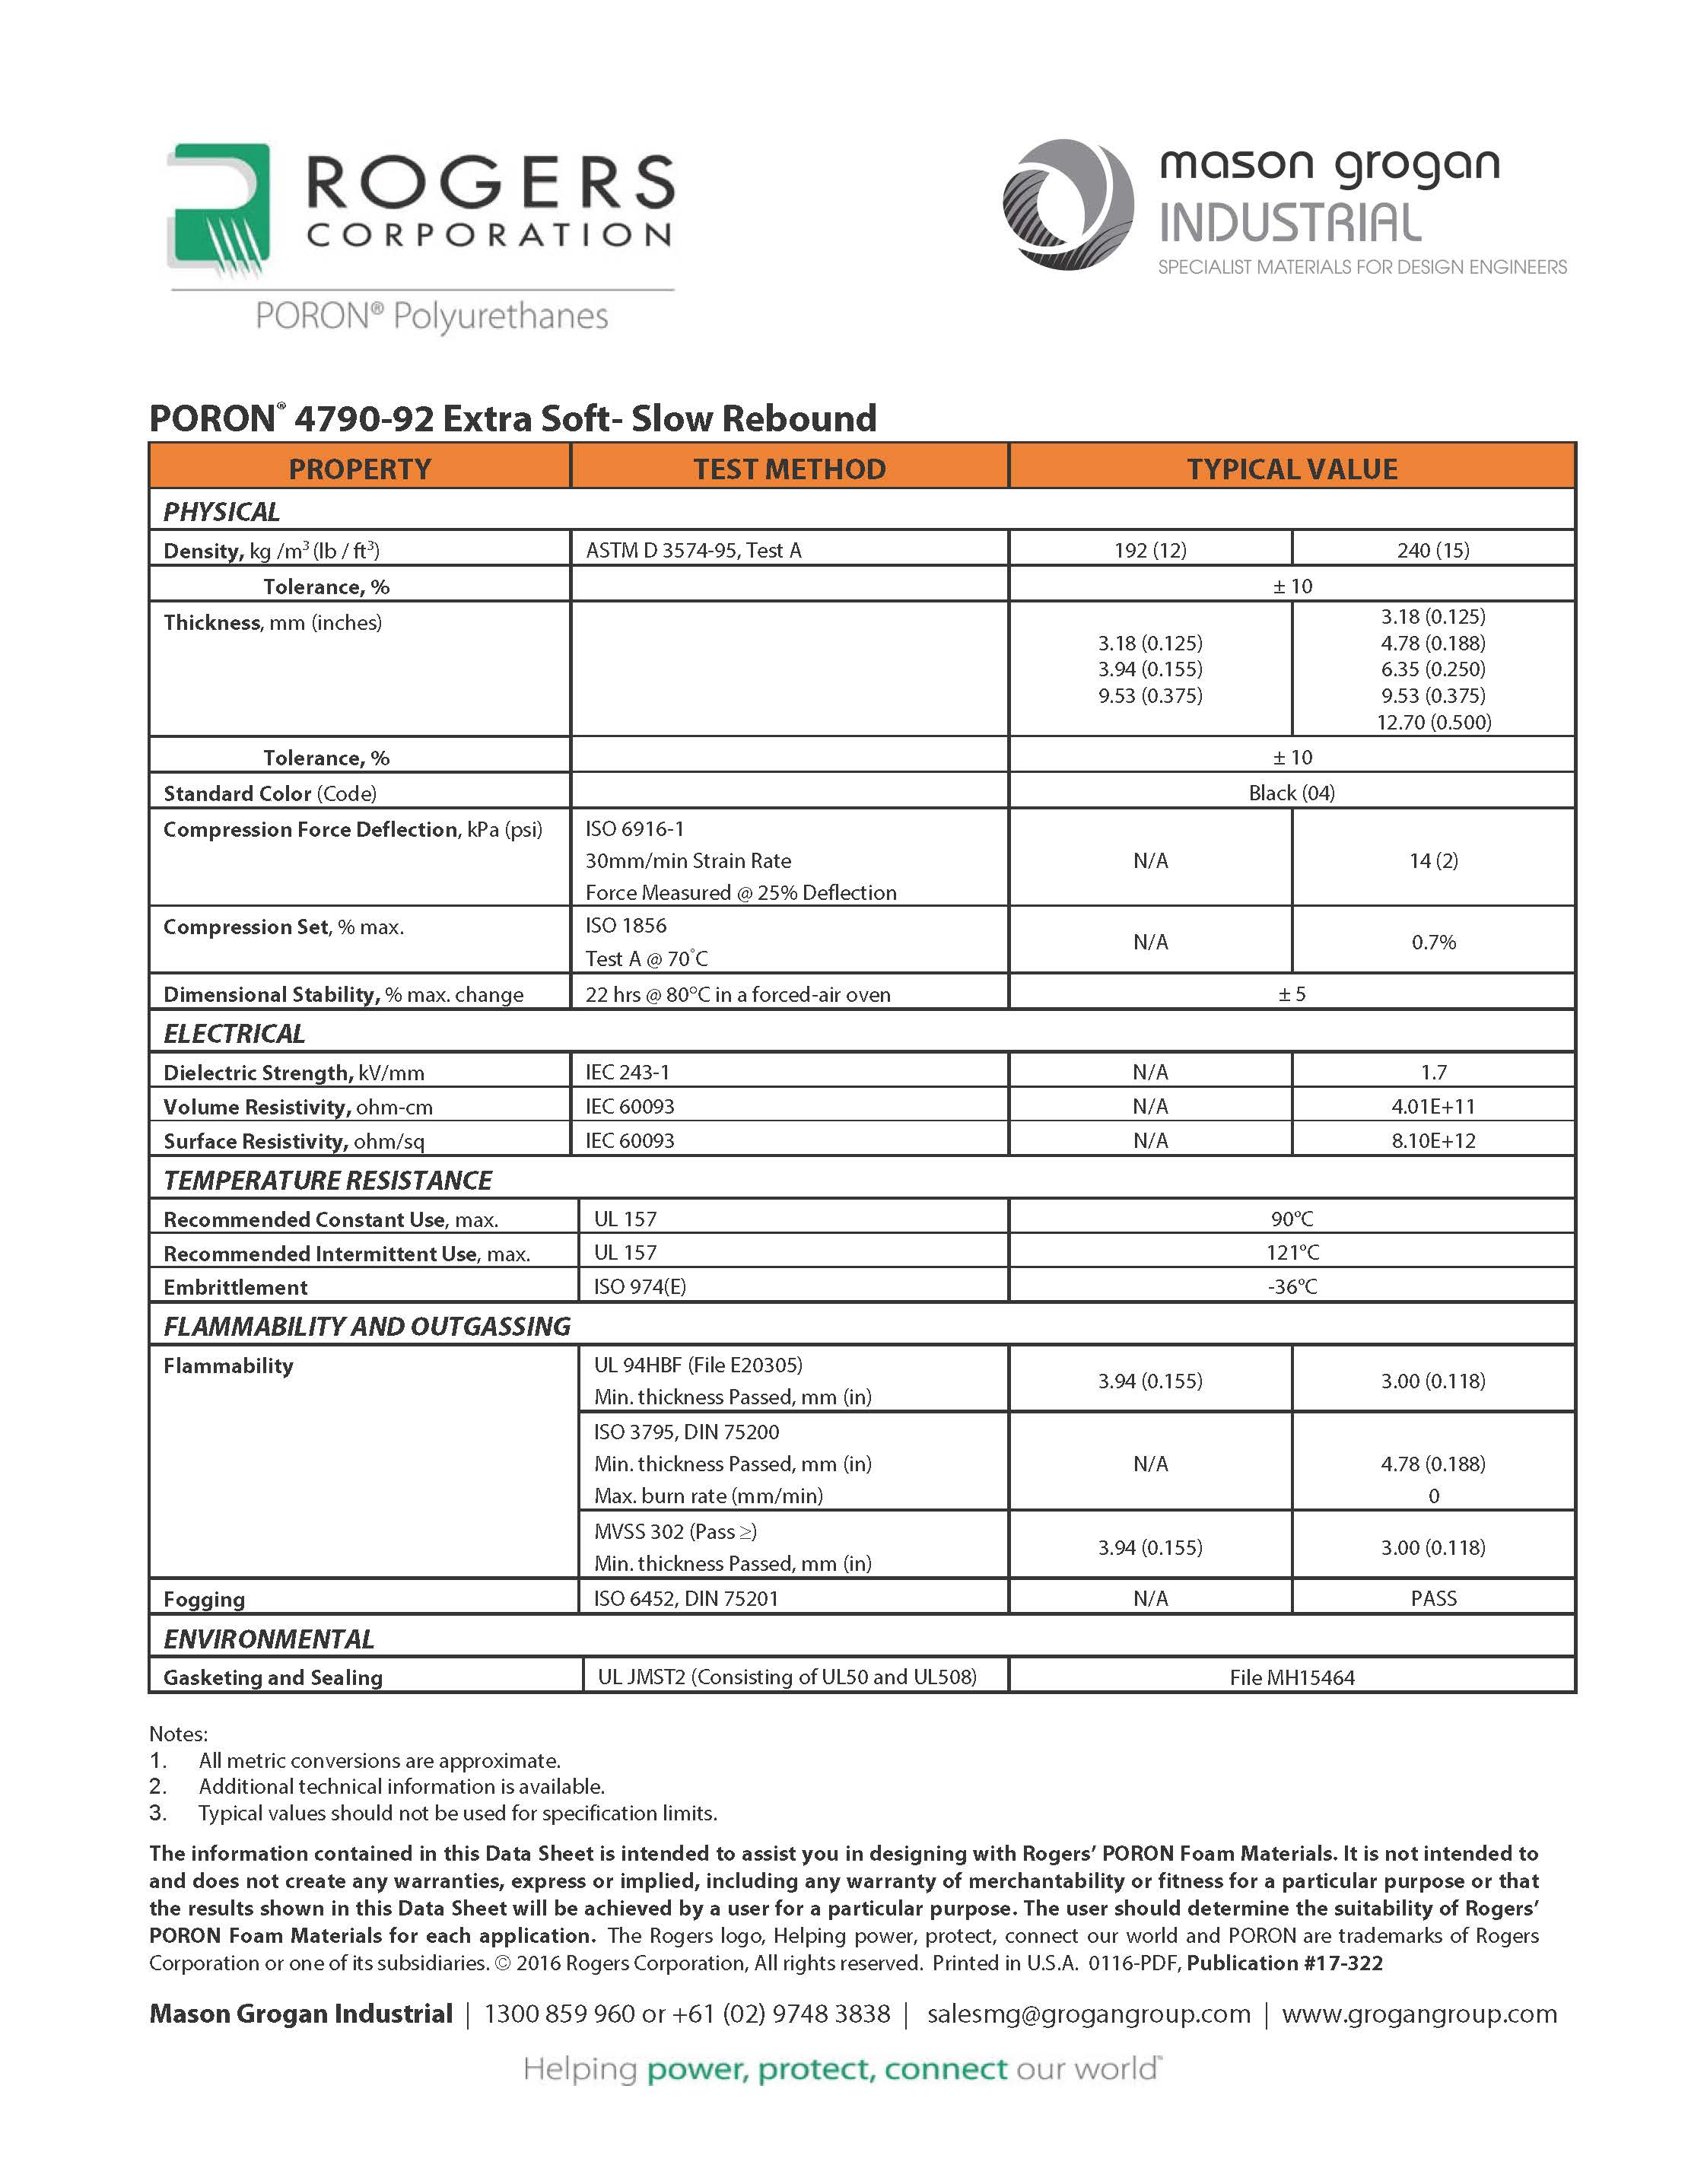 PORON® 4790-92 Extra-Soft Slow-Rebound Global Standards Data Sheet